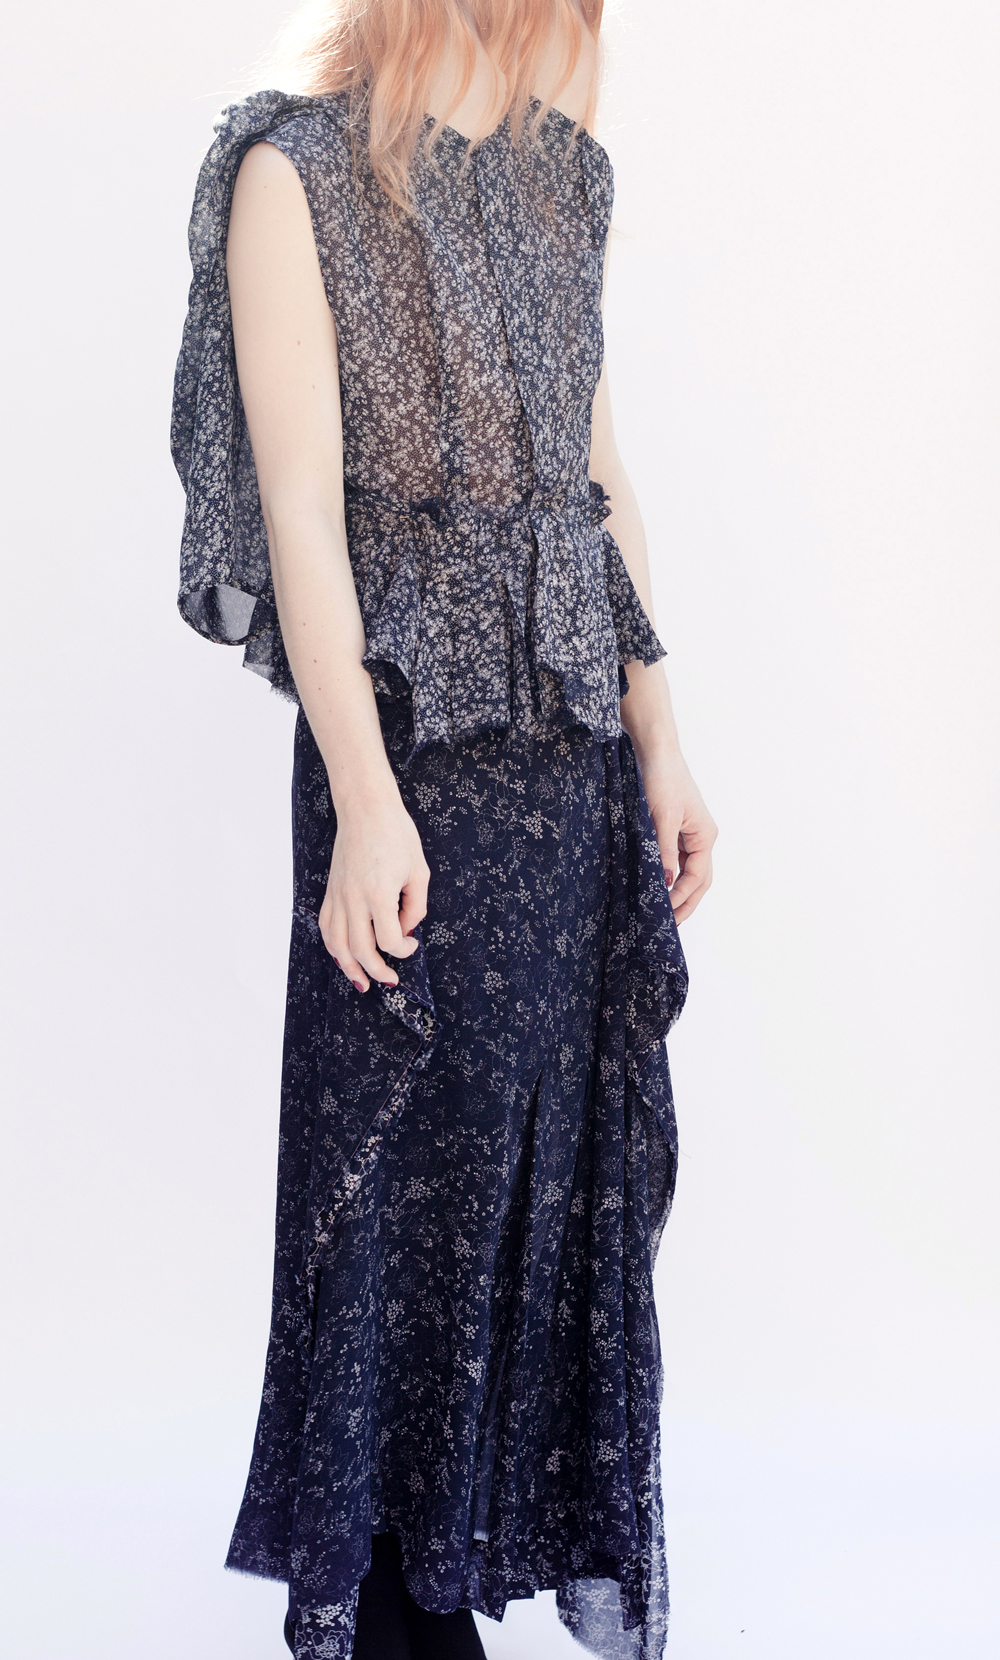 DRESS-ltd NAVY PRINT REMNANT Broken Dress Jacket & Inside Out Emerging Skirt, worn sleeveless